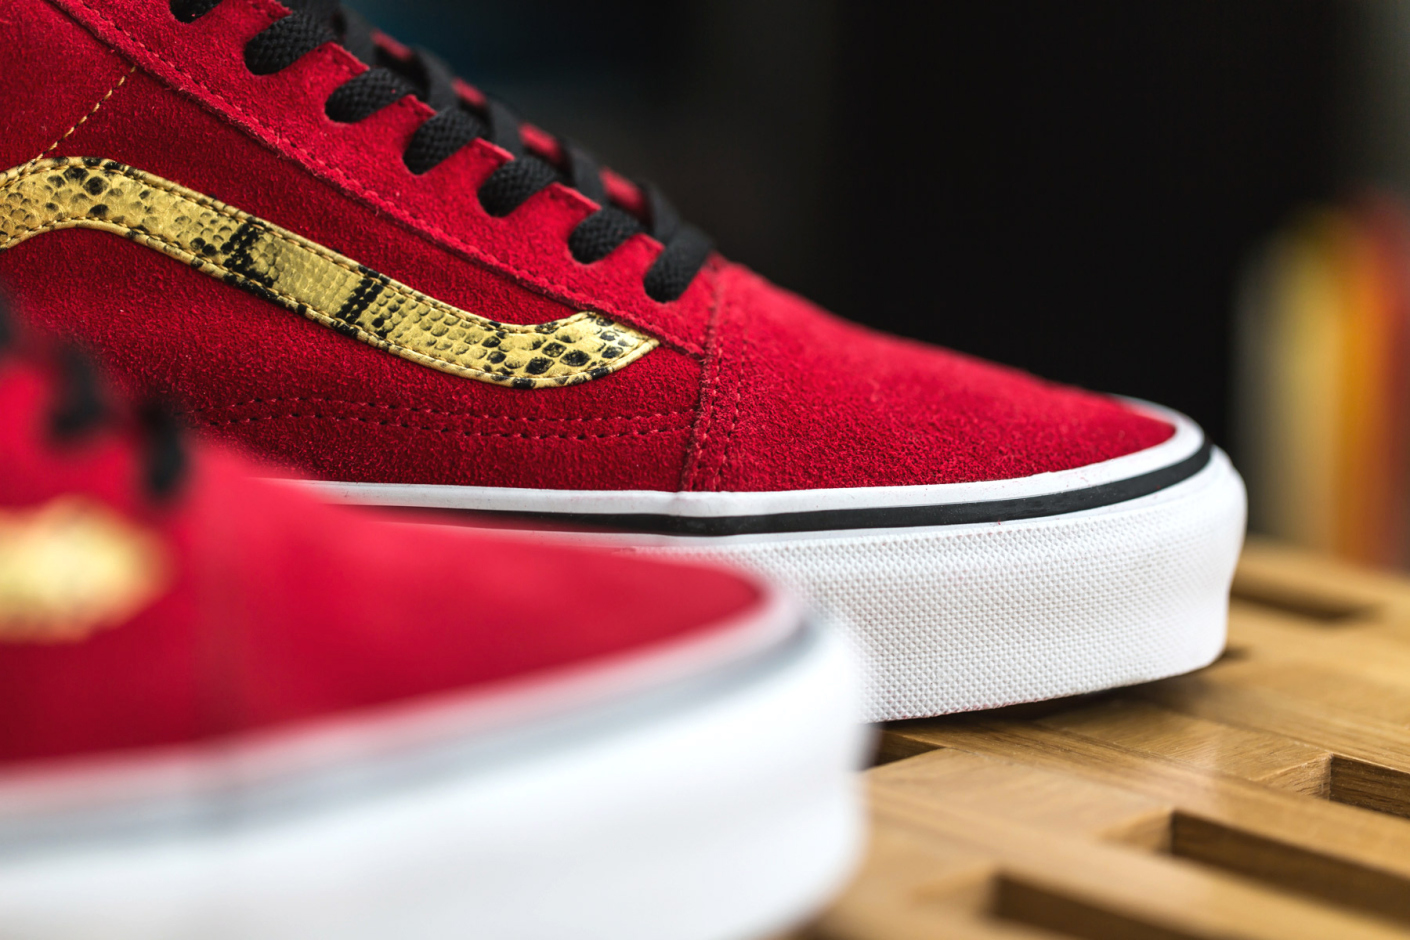 vans old skool red and gold